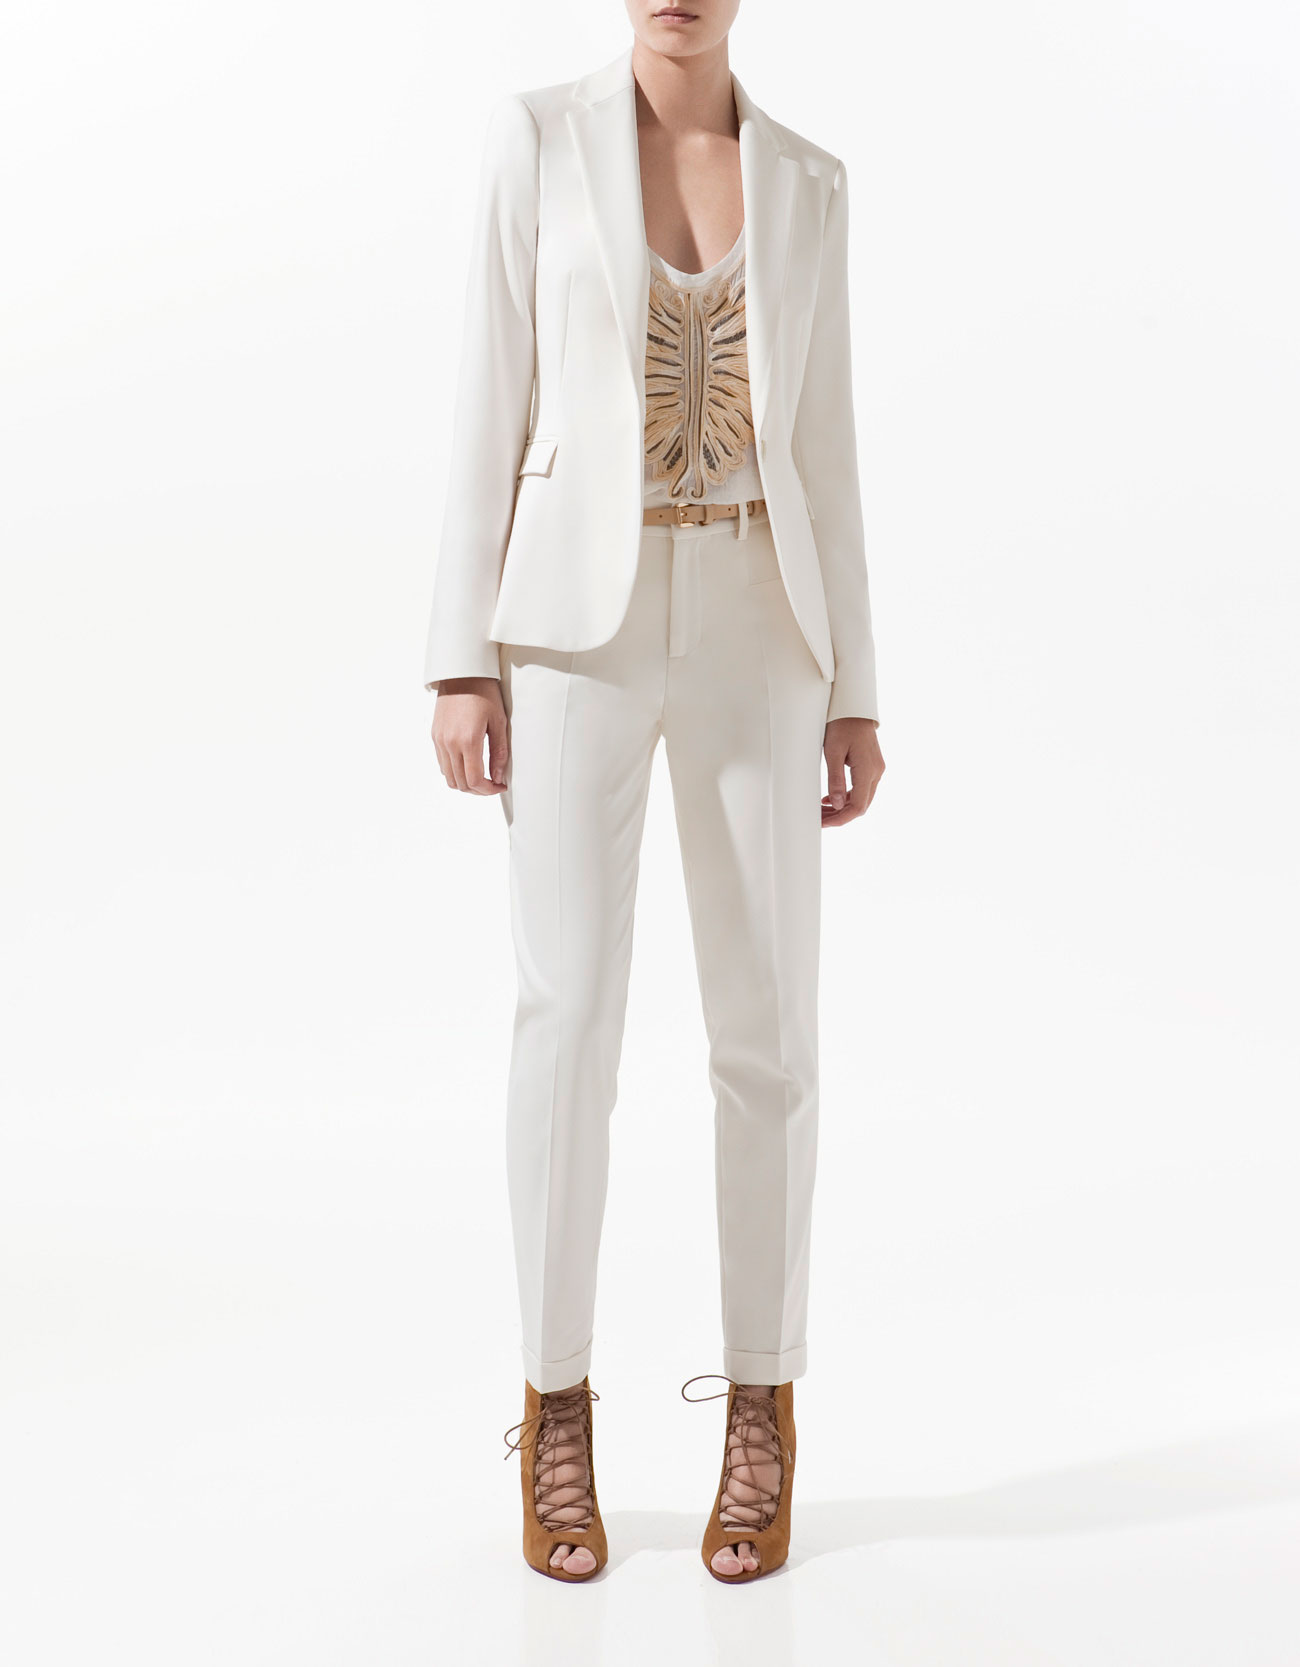 Zara Basic Blazer in White (vanilla)